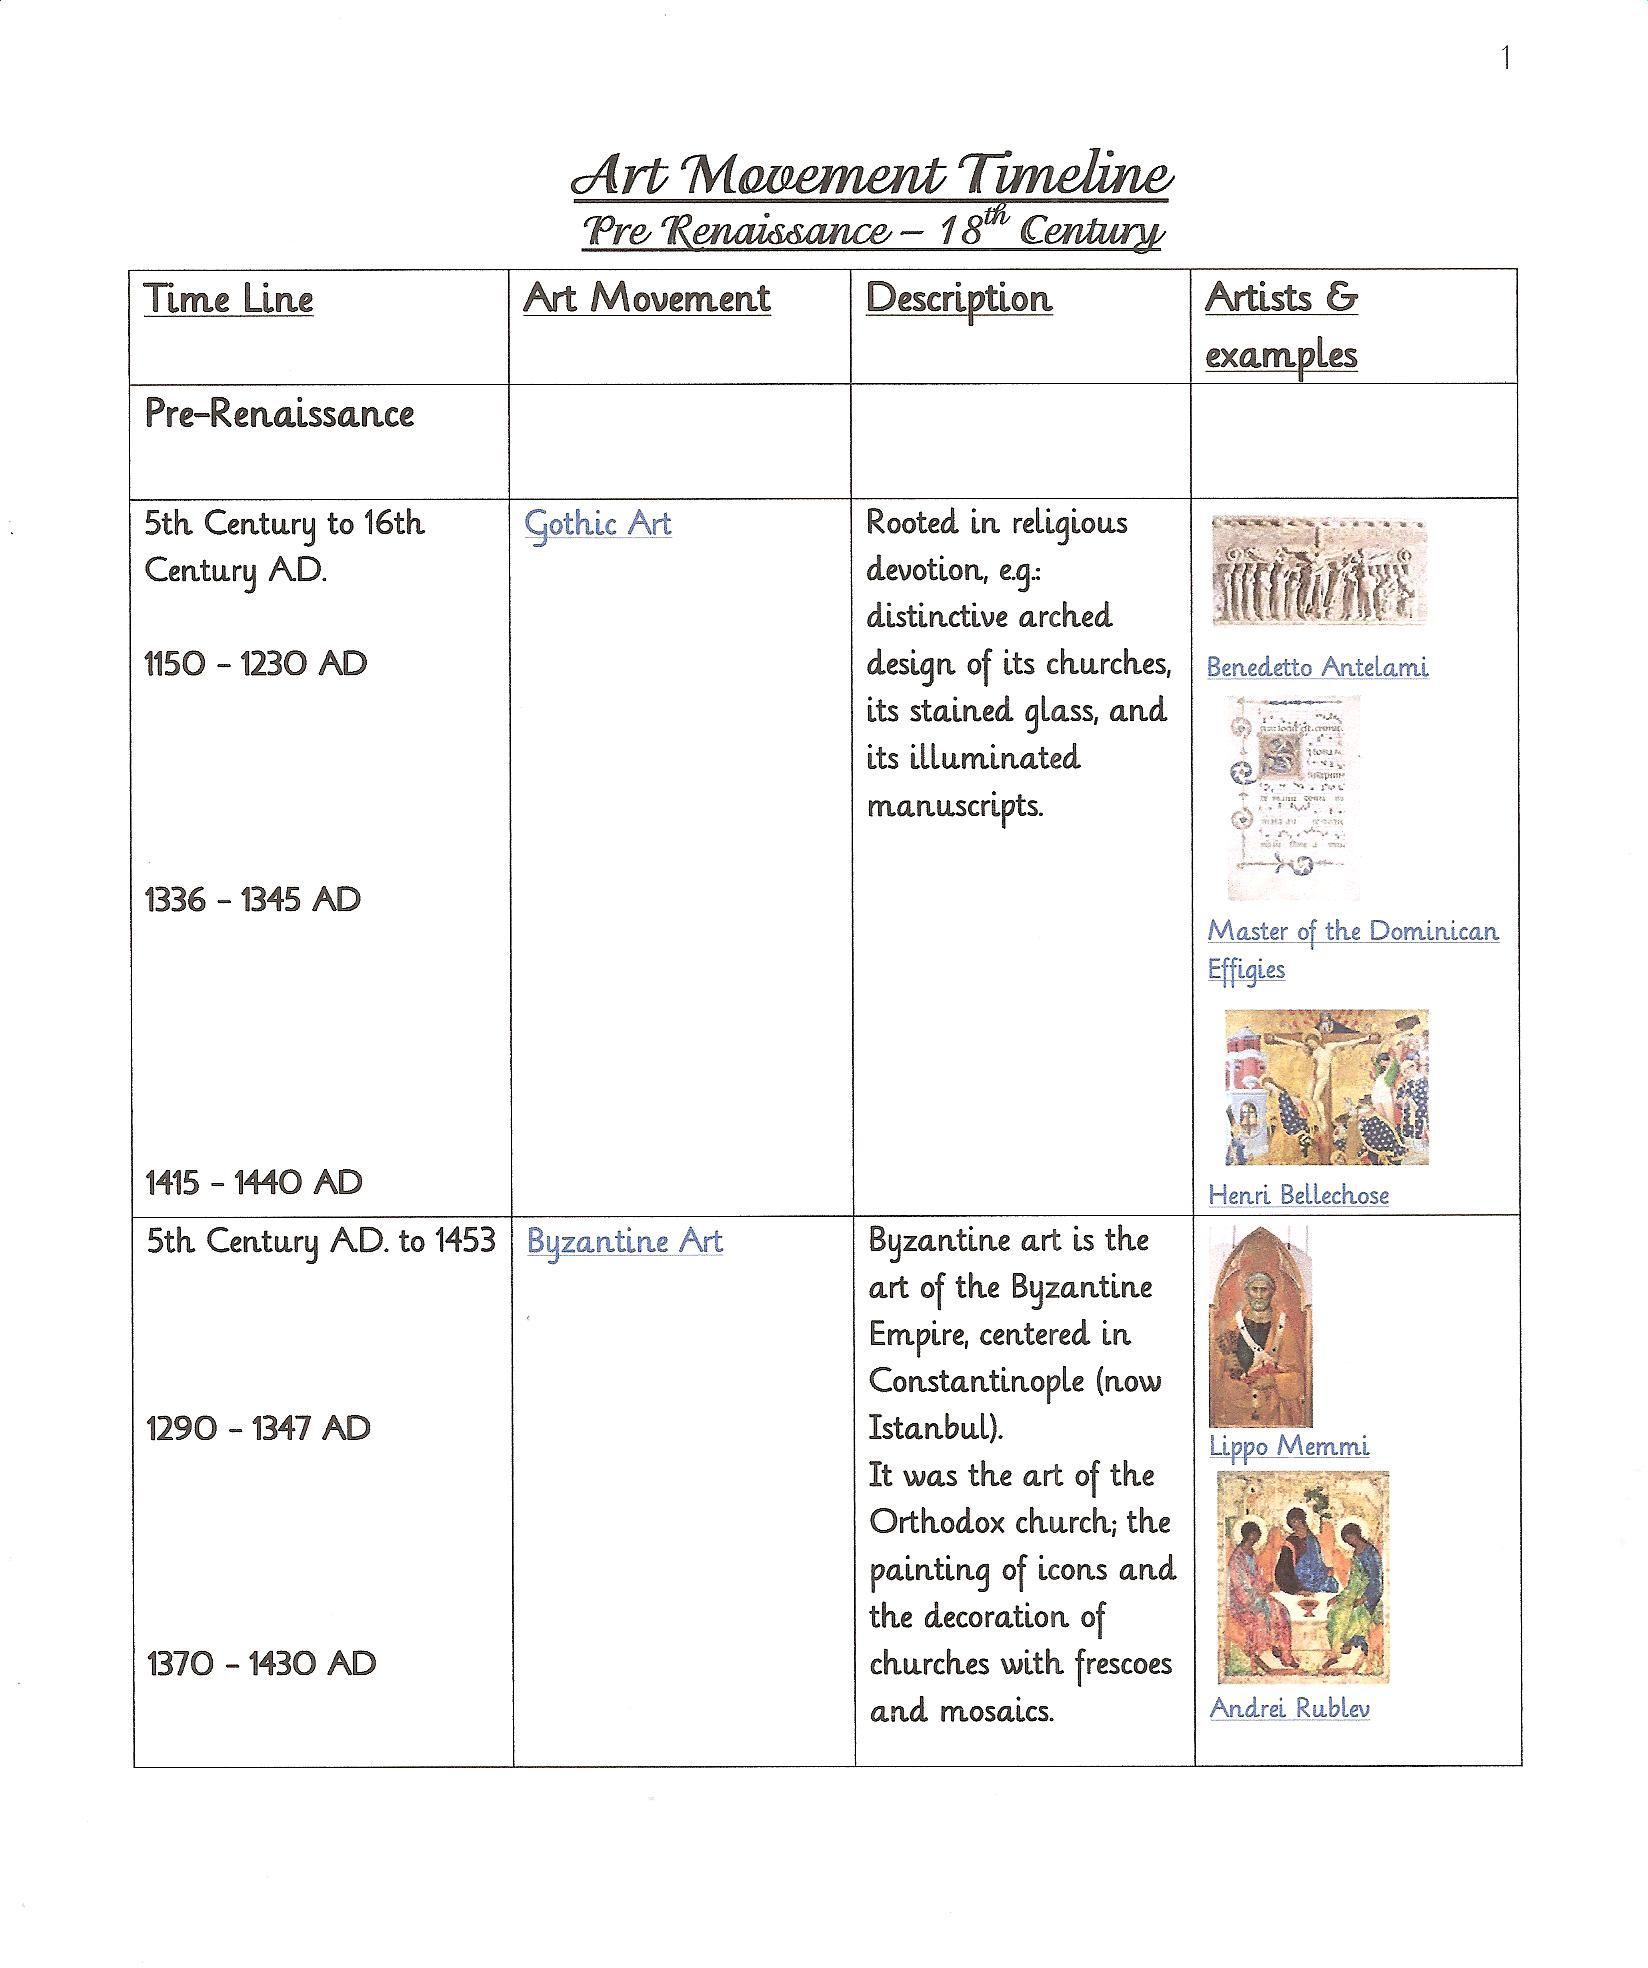 Art Era Timeline 1 Pre Renaissance To 18th Century